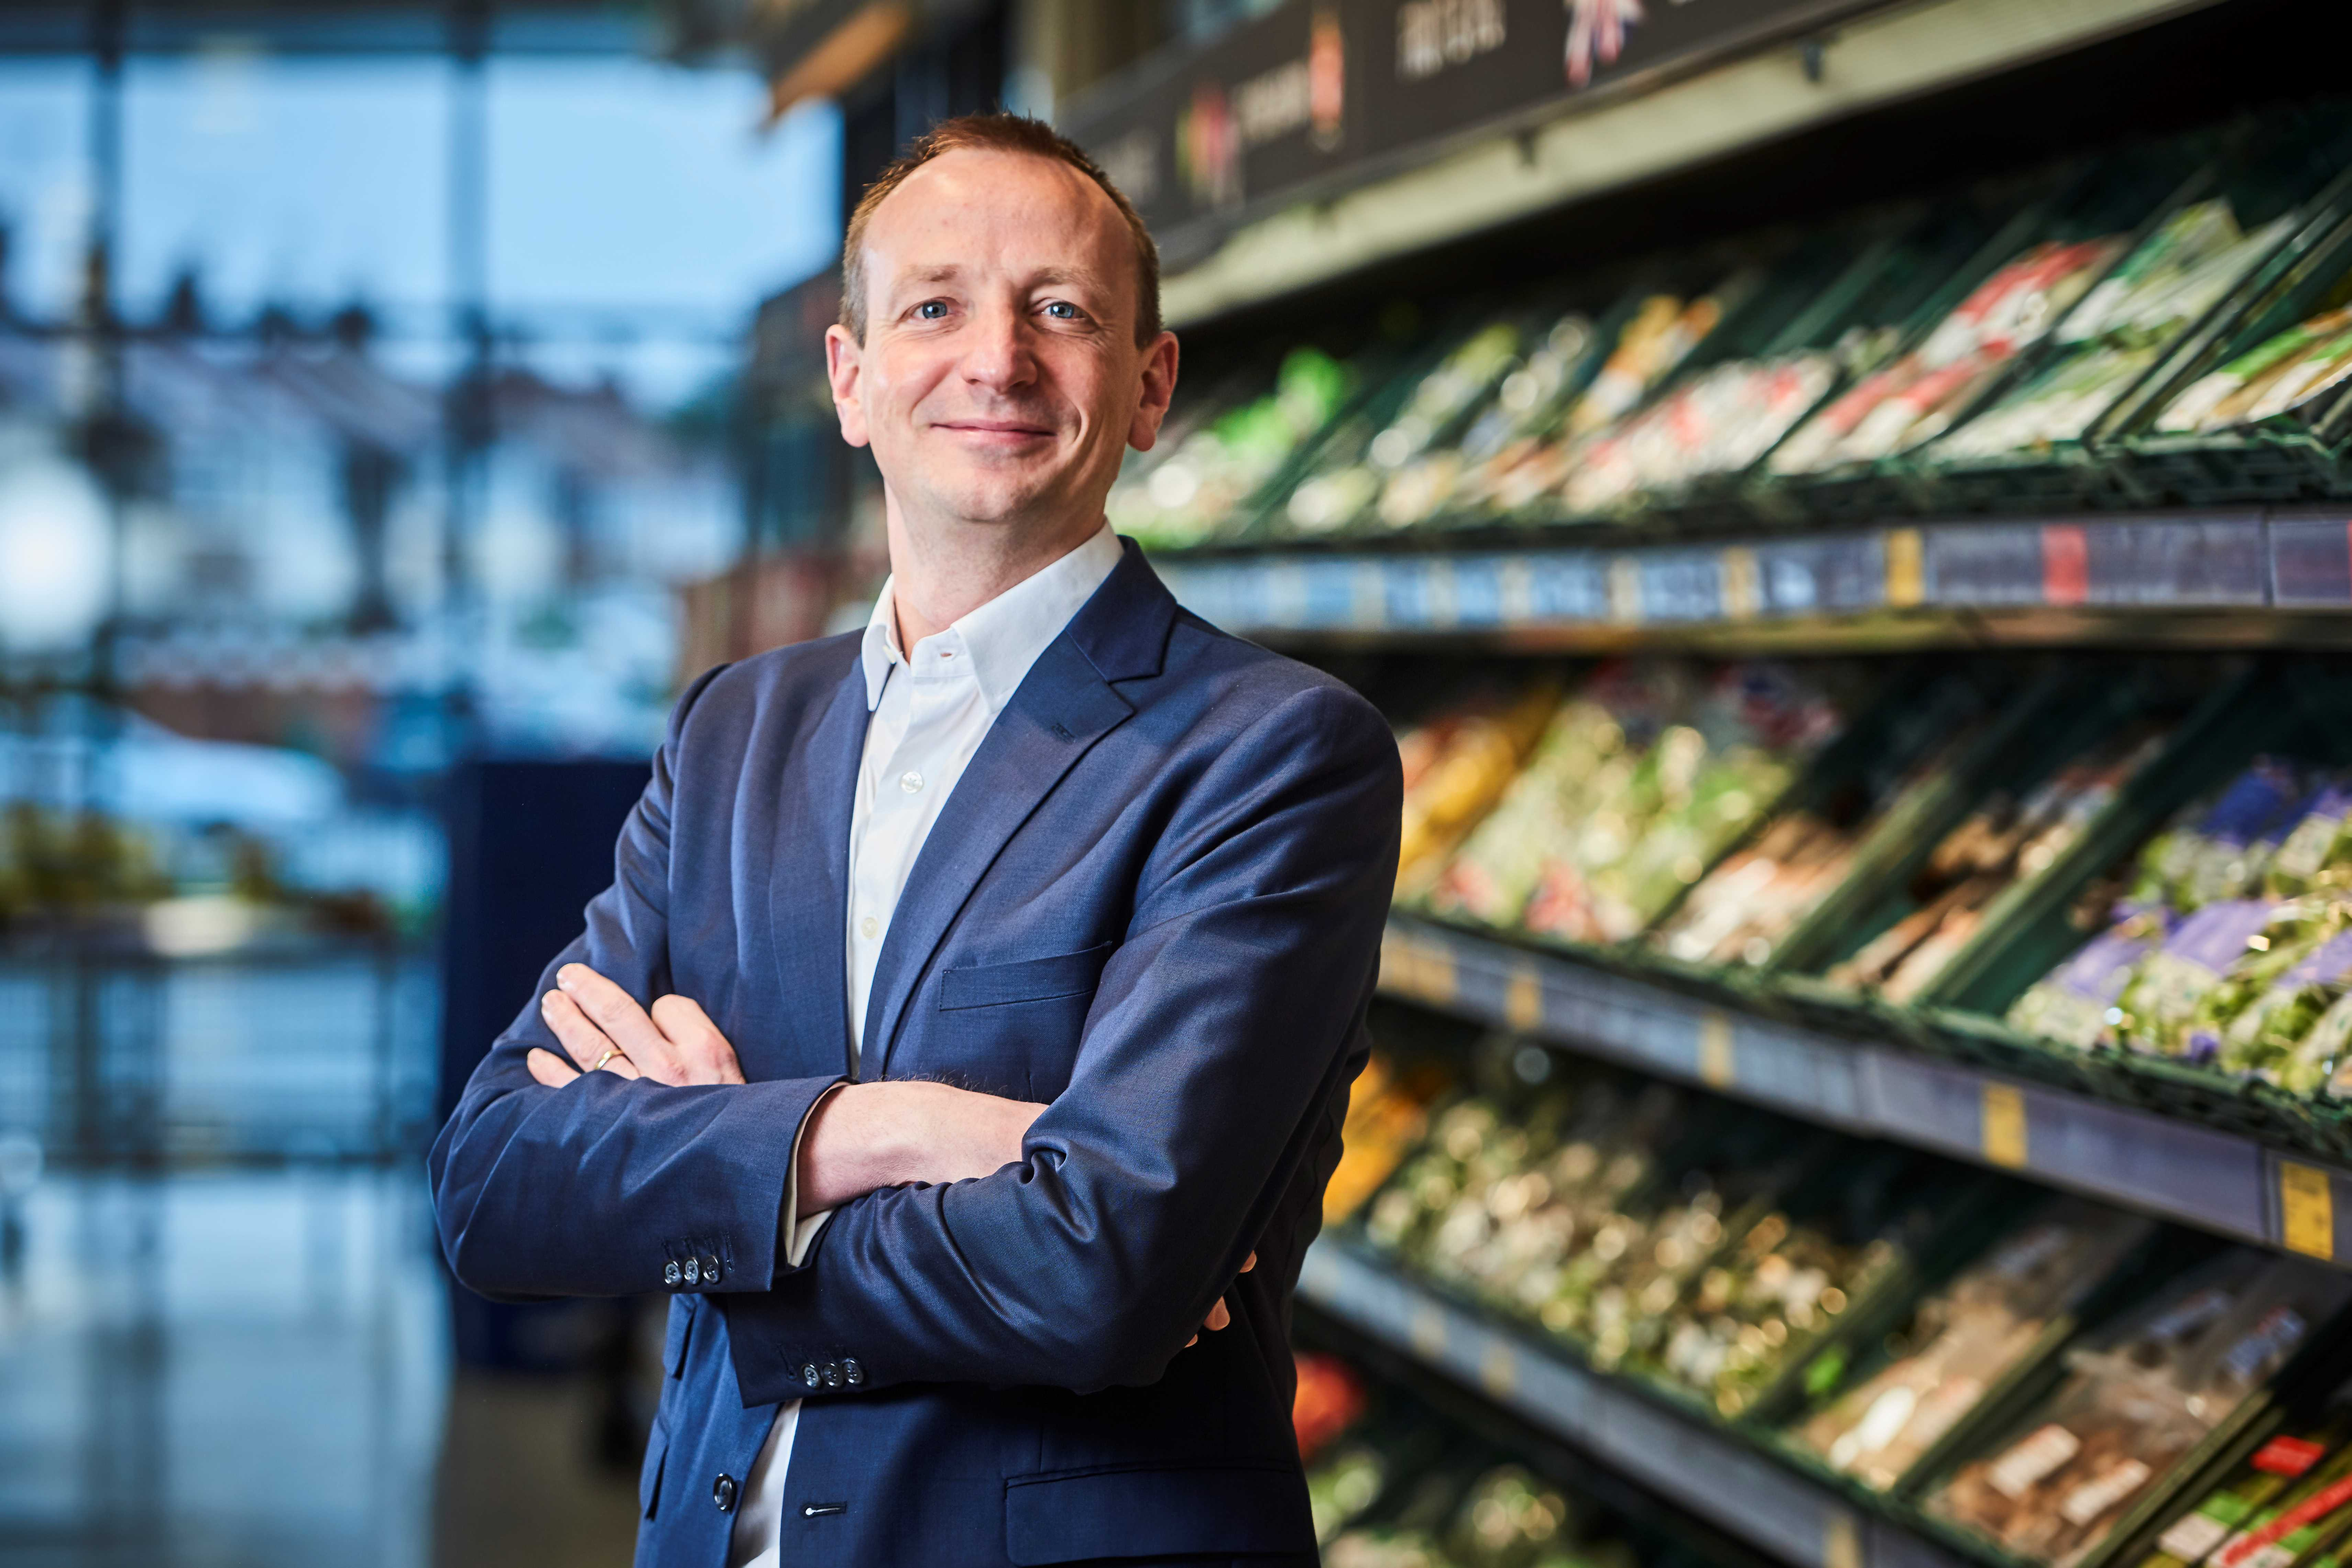 Giles Hurley, CEO of Aldi UK & Ireland (Aldi/PA)